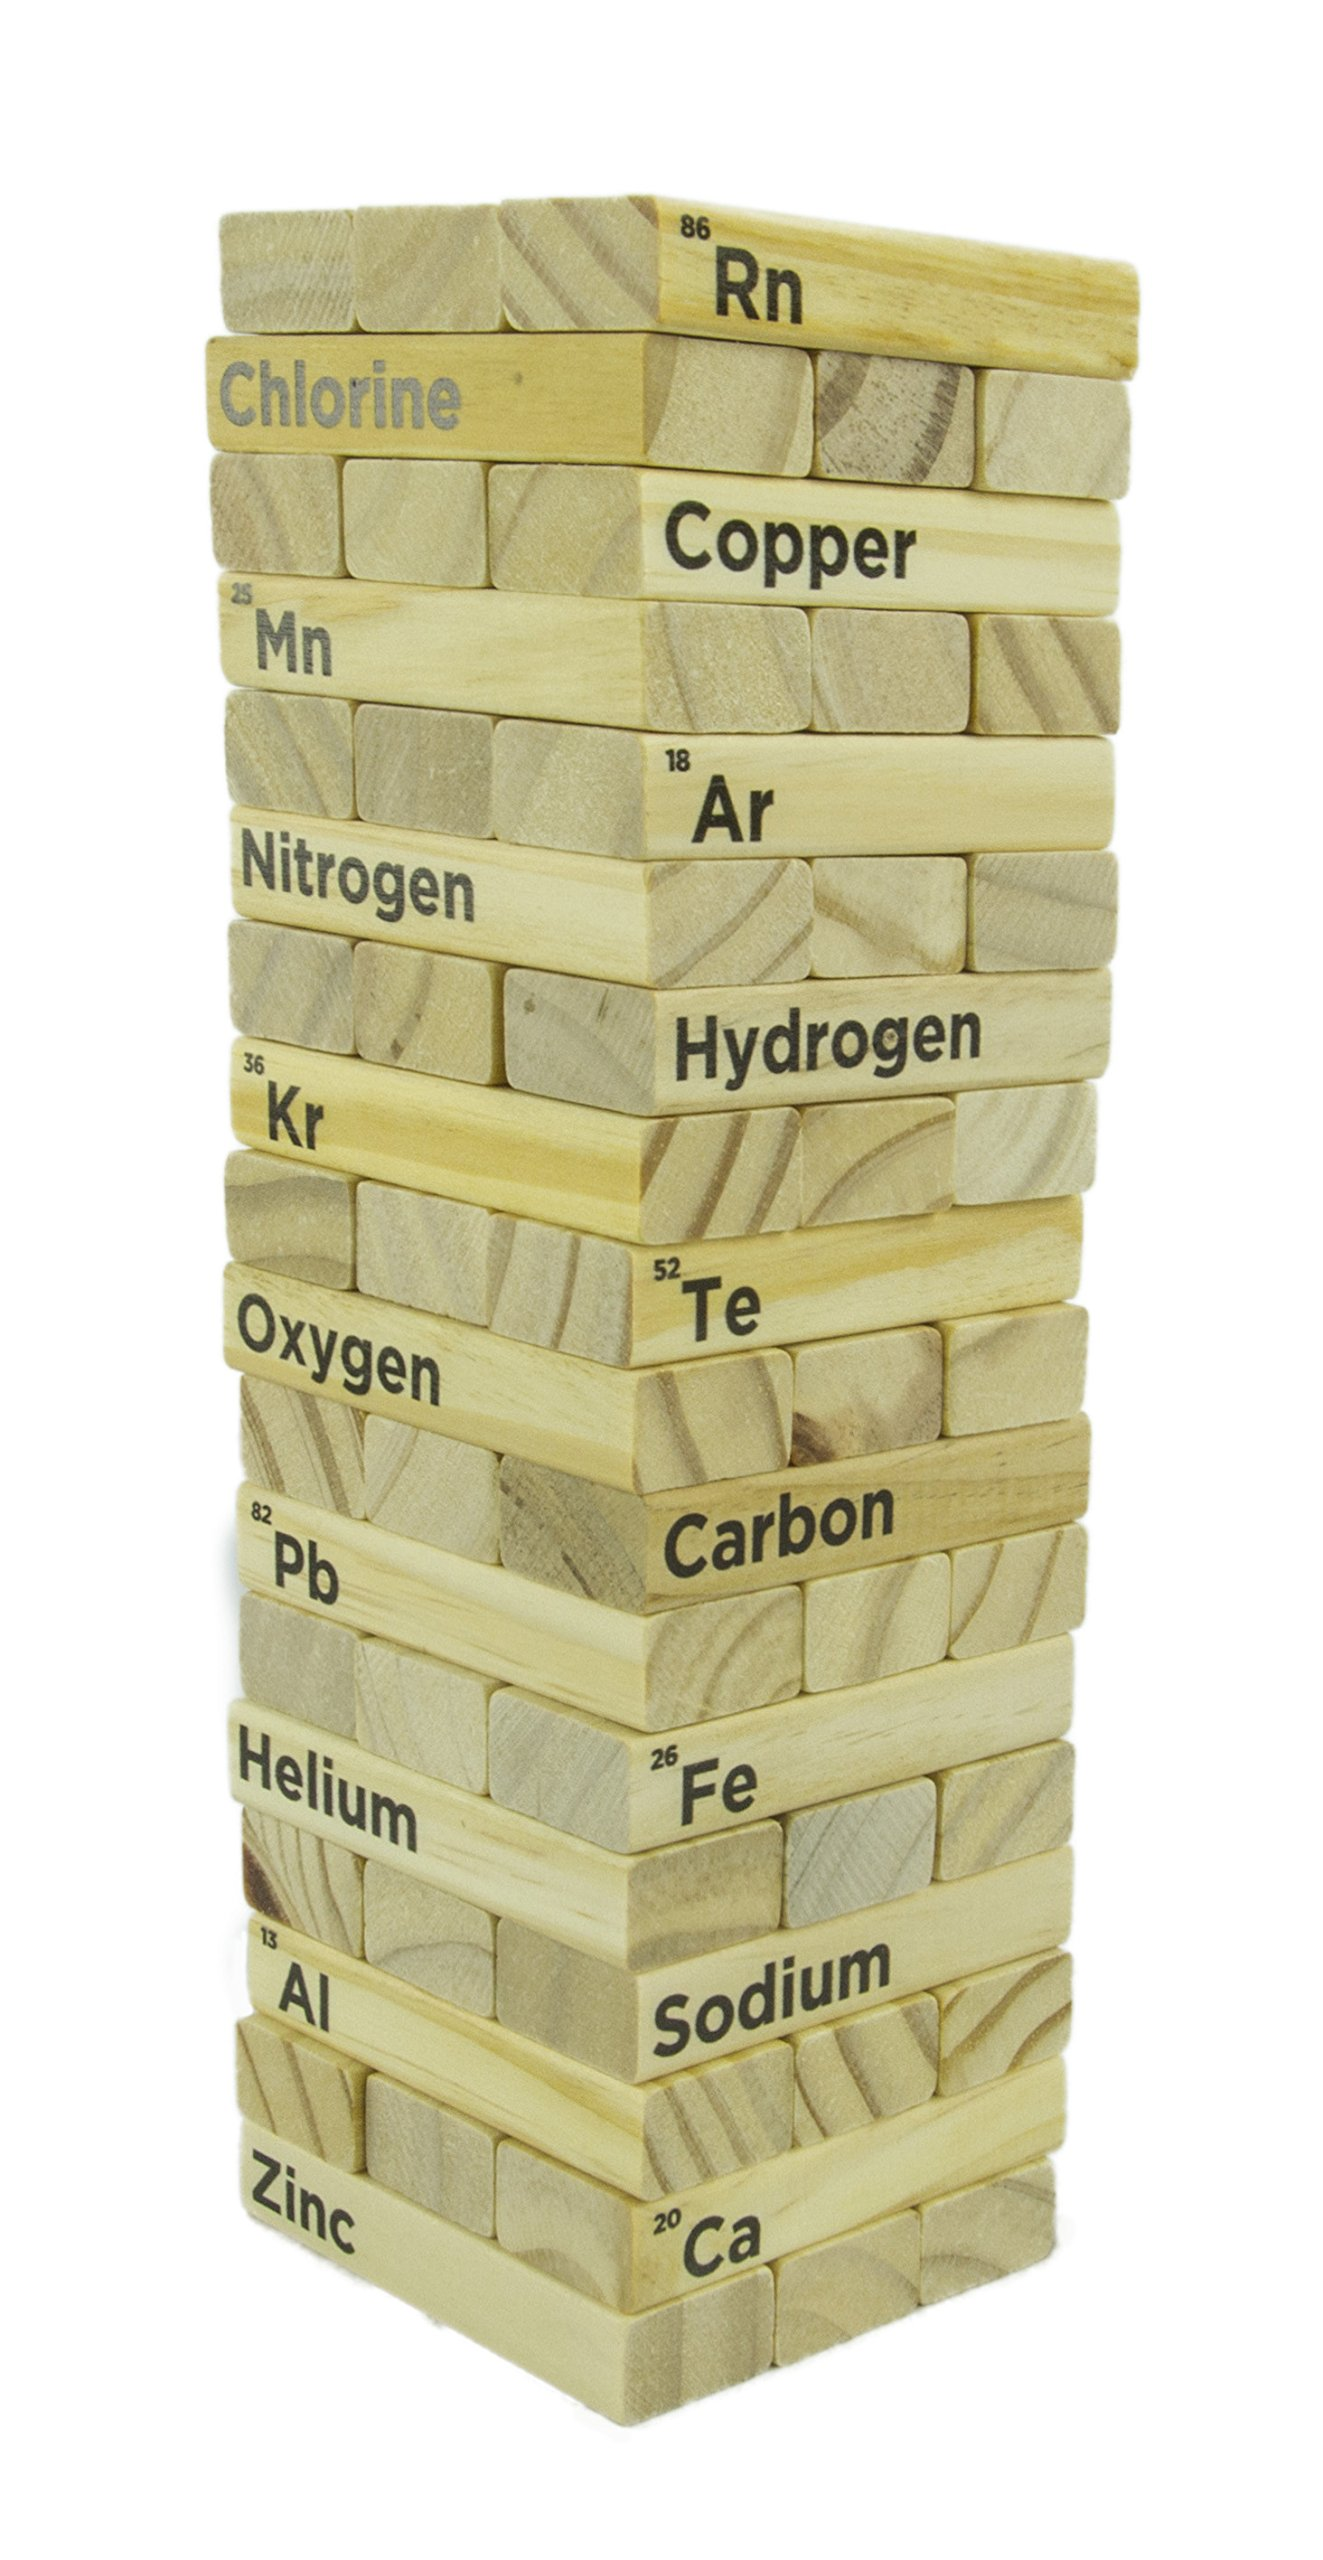 Periodic Table Wood Block Tower Stacking Game | Classic Game for Kids & Adults | Making Chemistry Fun to Learn | 54 Pieces